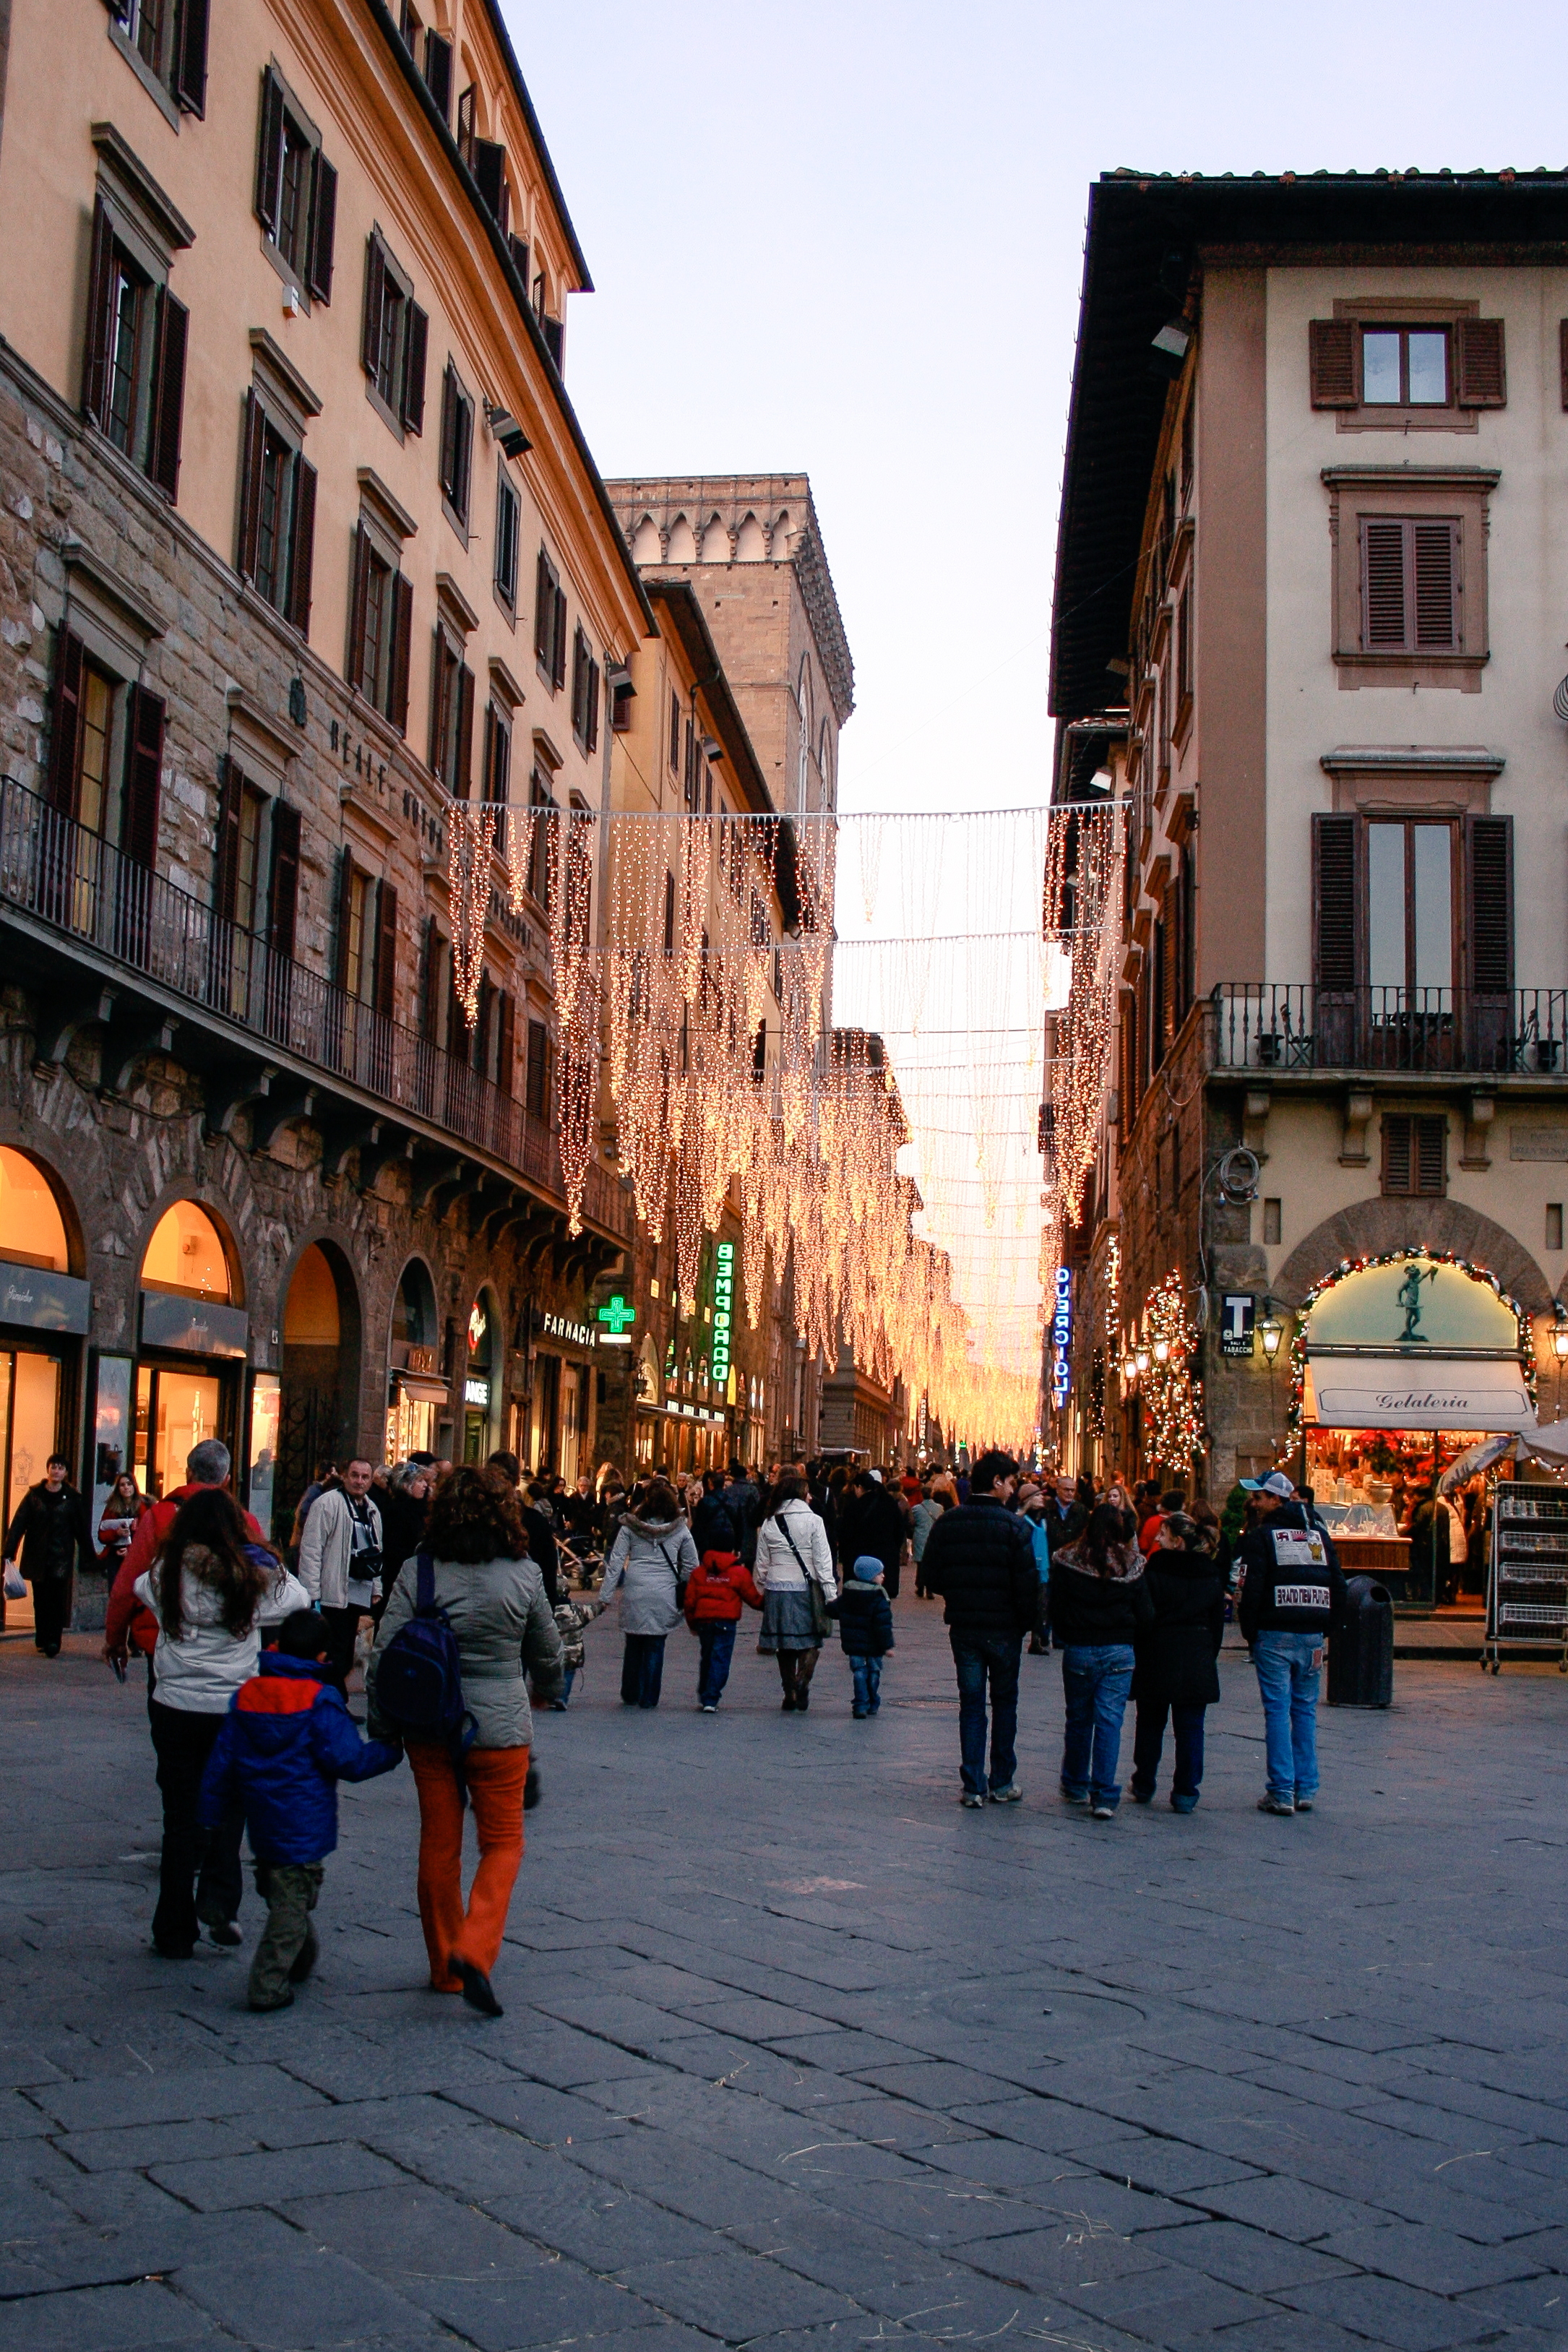 The streets of Florence, festooned with Christmas lights